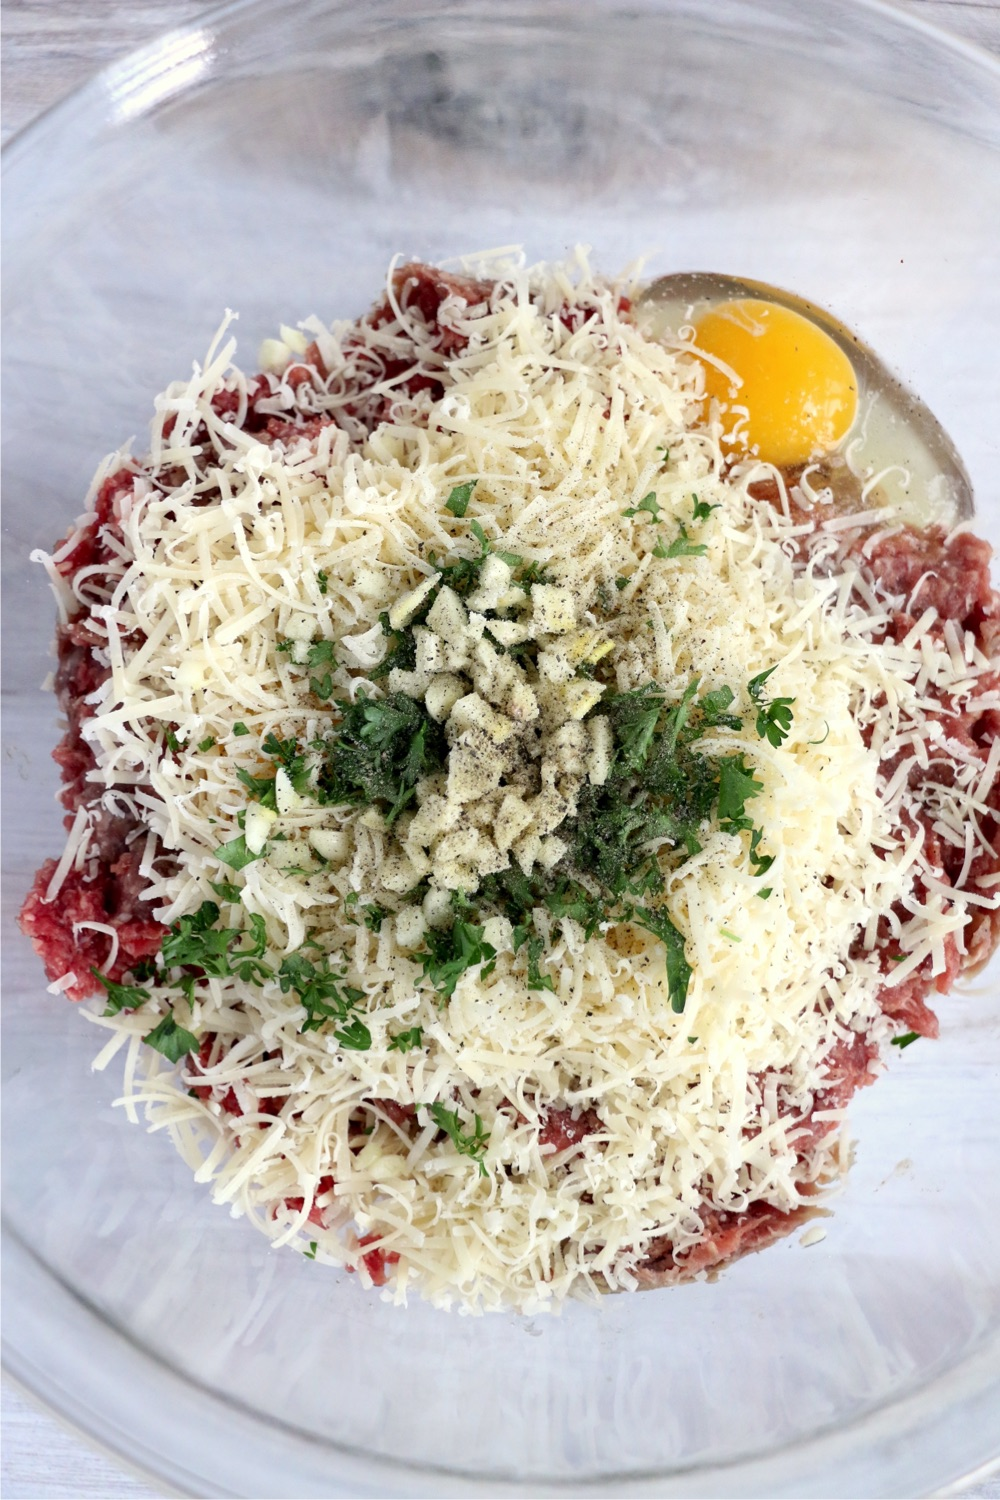 Mixing bowl filled with ground beef, ground pork, garlic, Romano cheese, parsley, salt and pepper